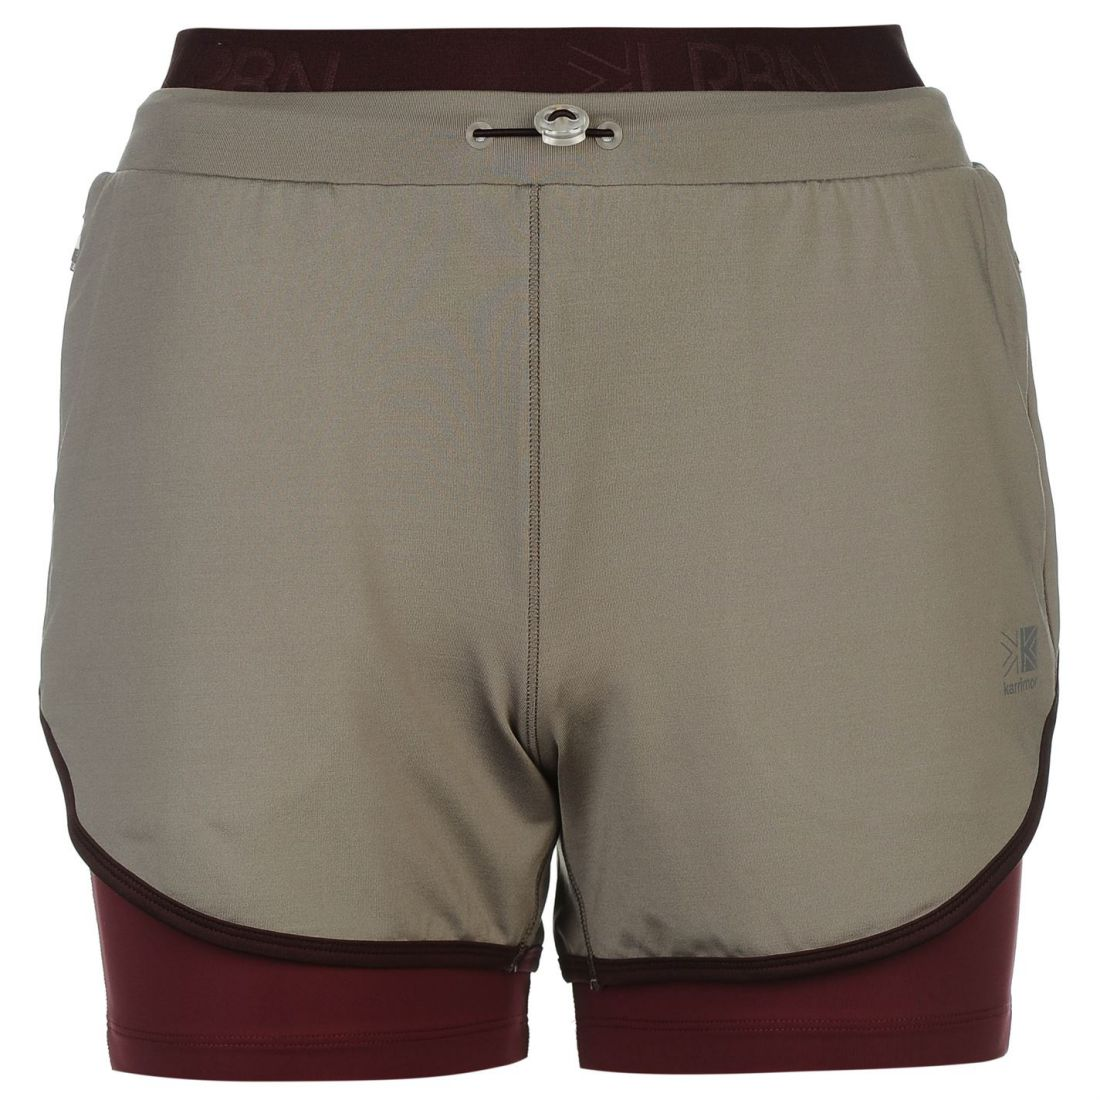 Image is loading Karrimor-Womens-Urban-2in1-Running-Shorts-Sports-Pants- a5a6b3b35d